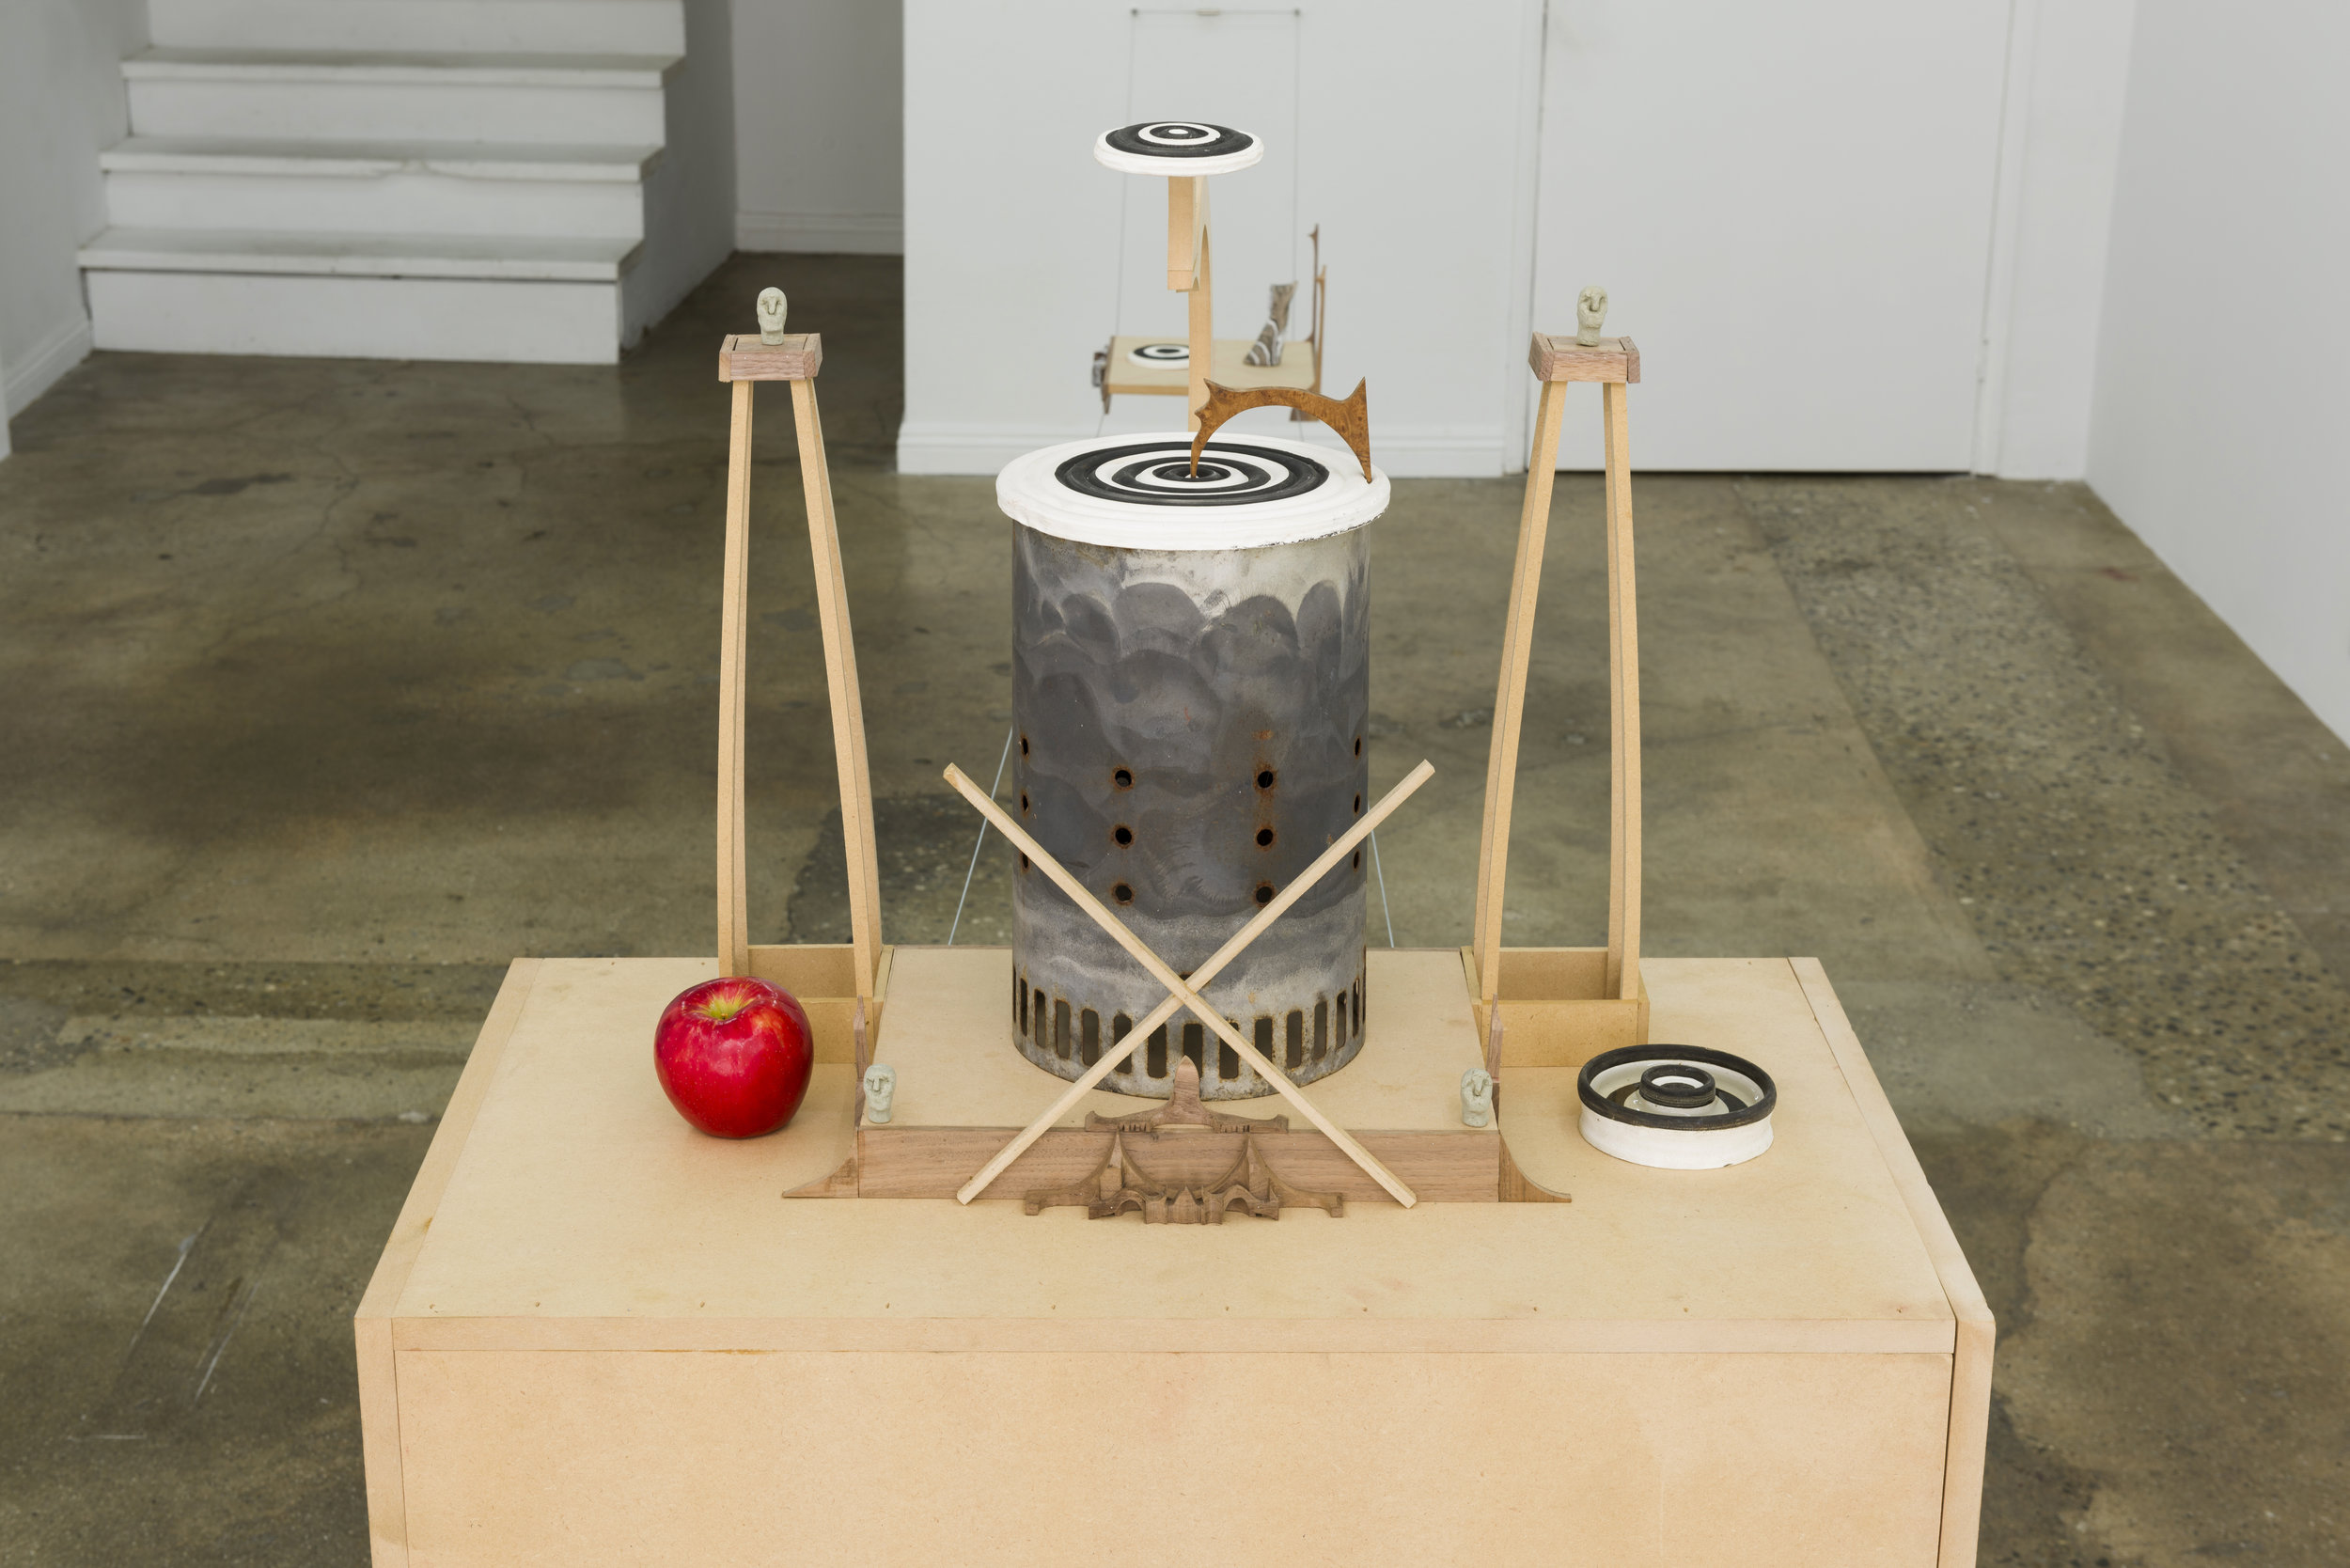 Harry Gould Harvey IV  Altar to the Hedonist of Eden   2019 MDF, walnut, burl, clay, metal, apple, bong water 21 x 23 x 11.5 in